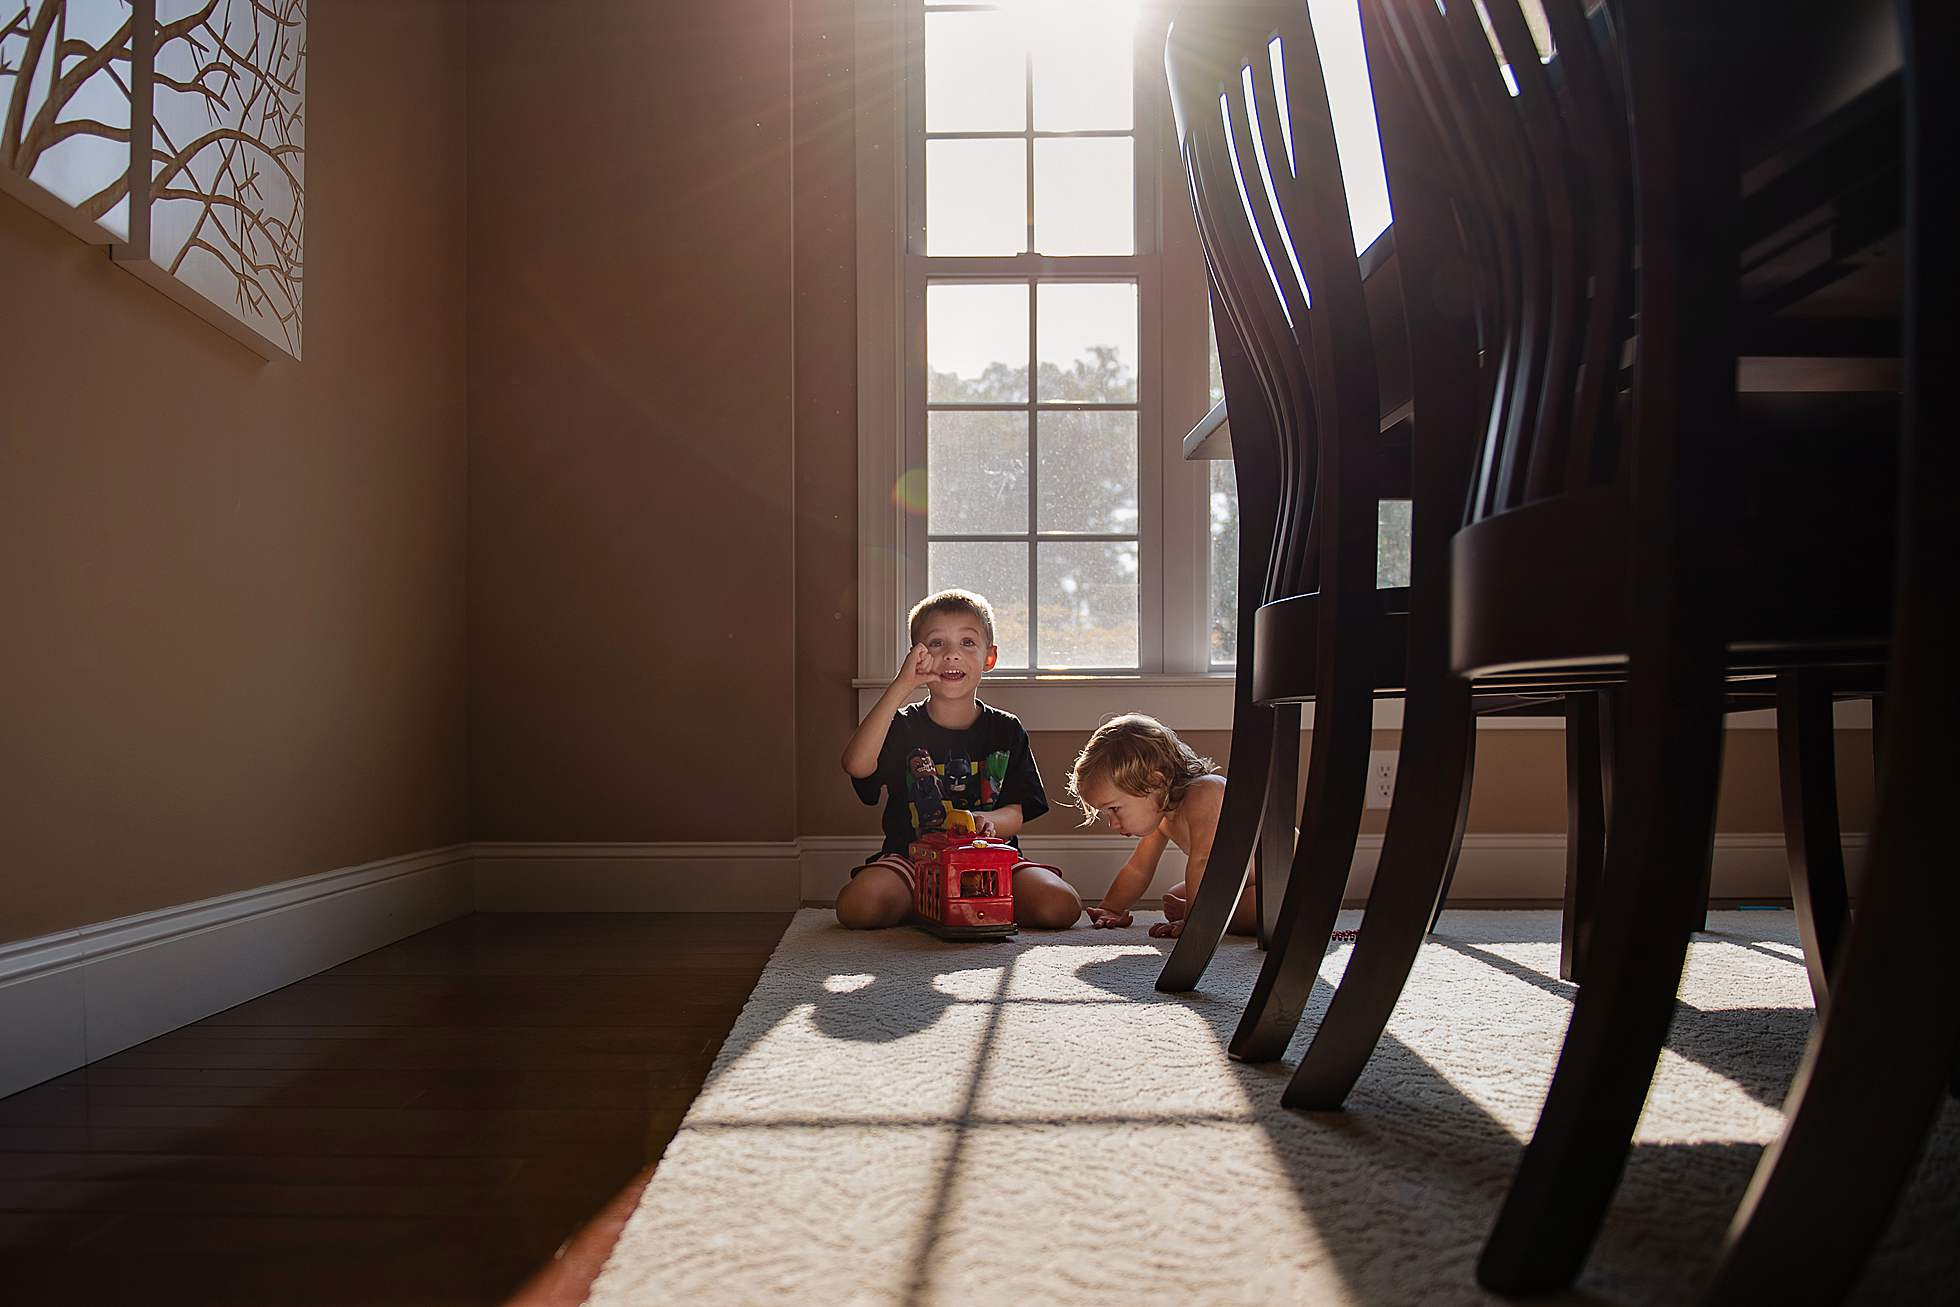 Kids play in light and shadows